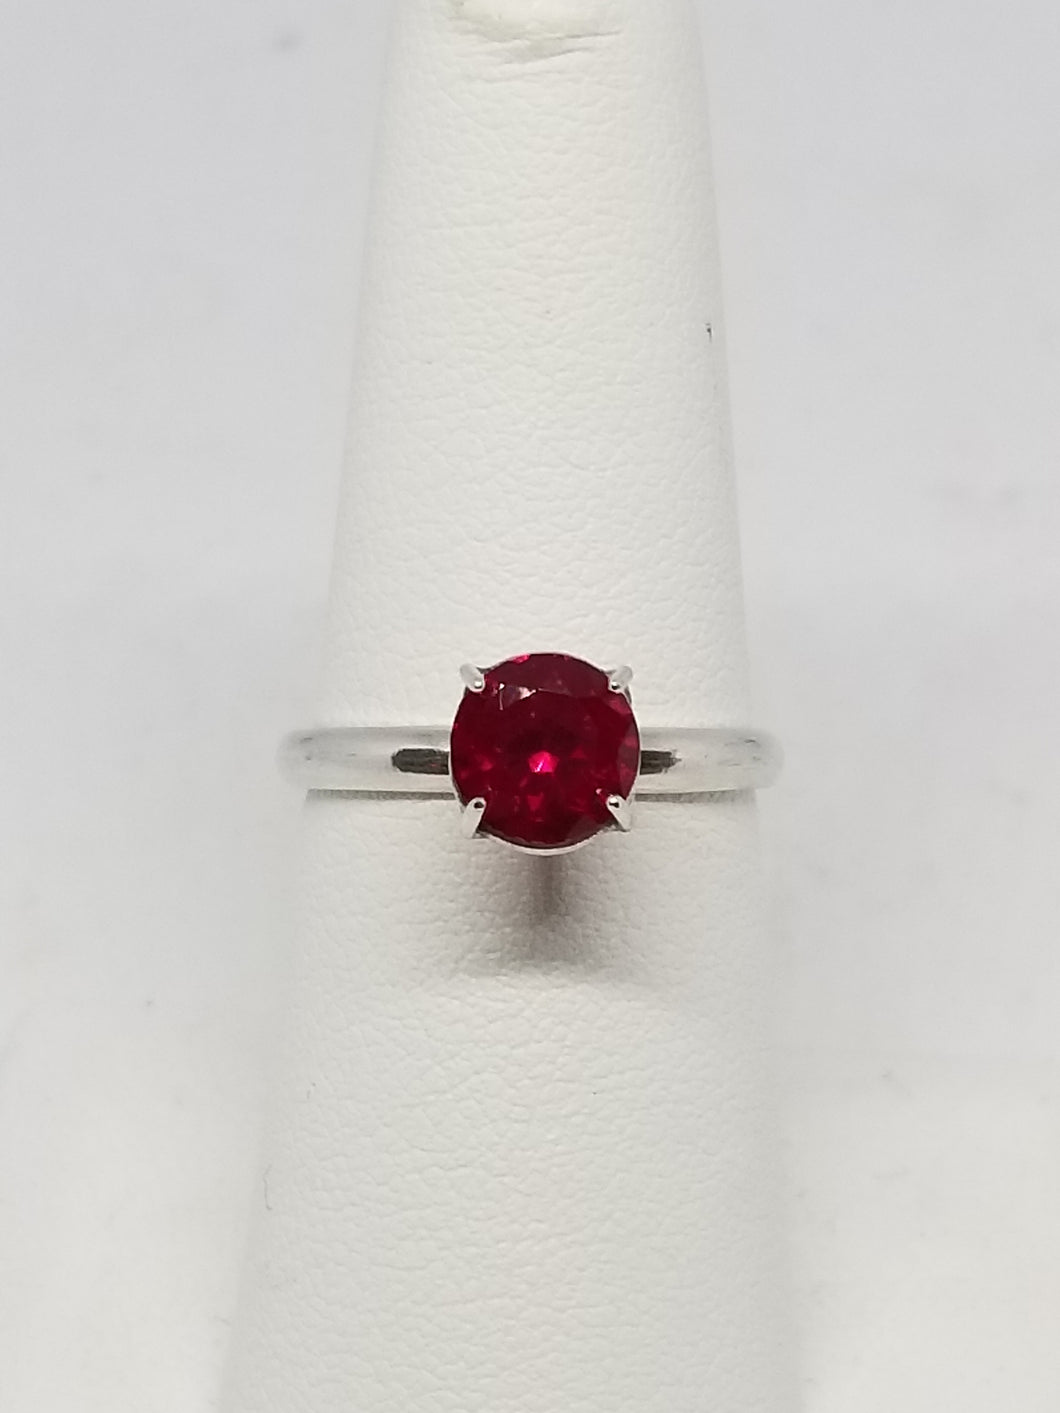 Handmade Sterling Silver Pigeon Blood Ruby Ring